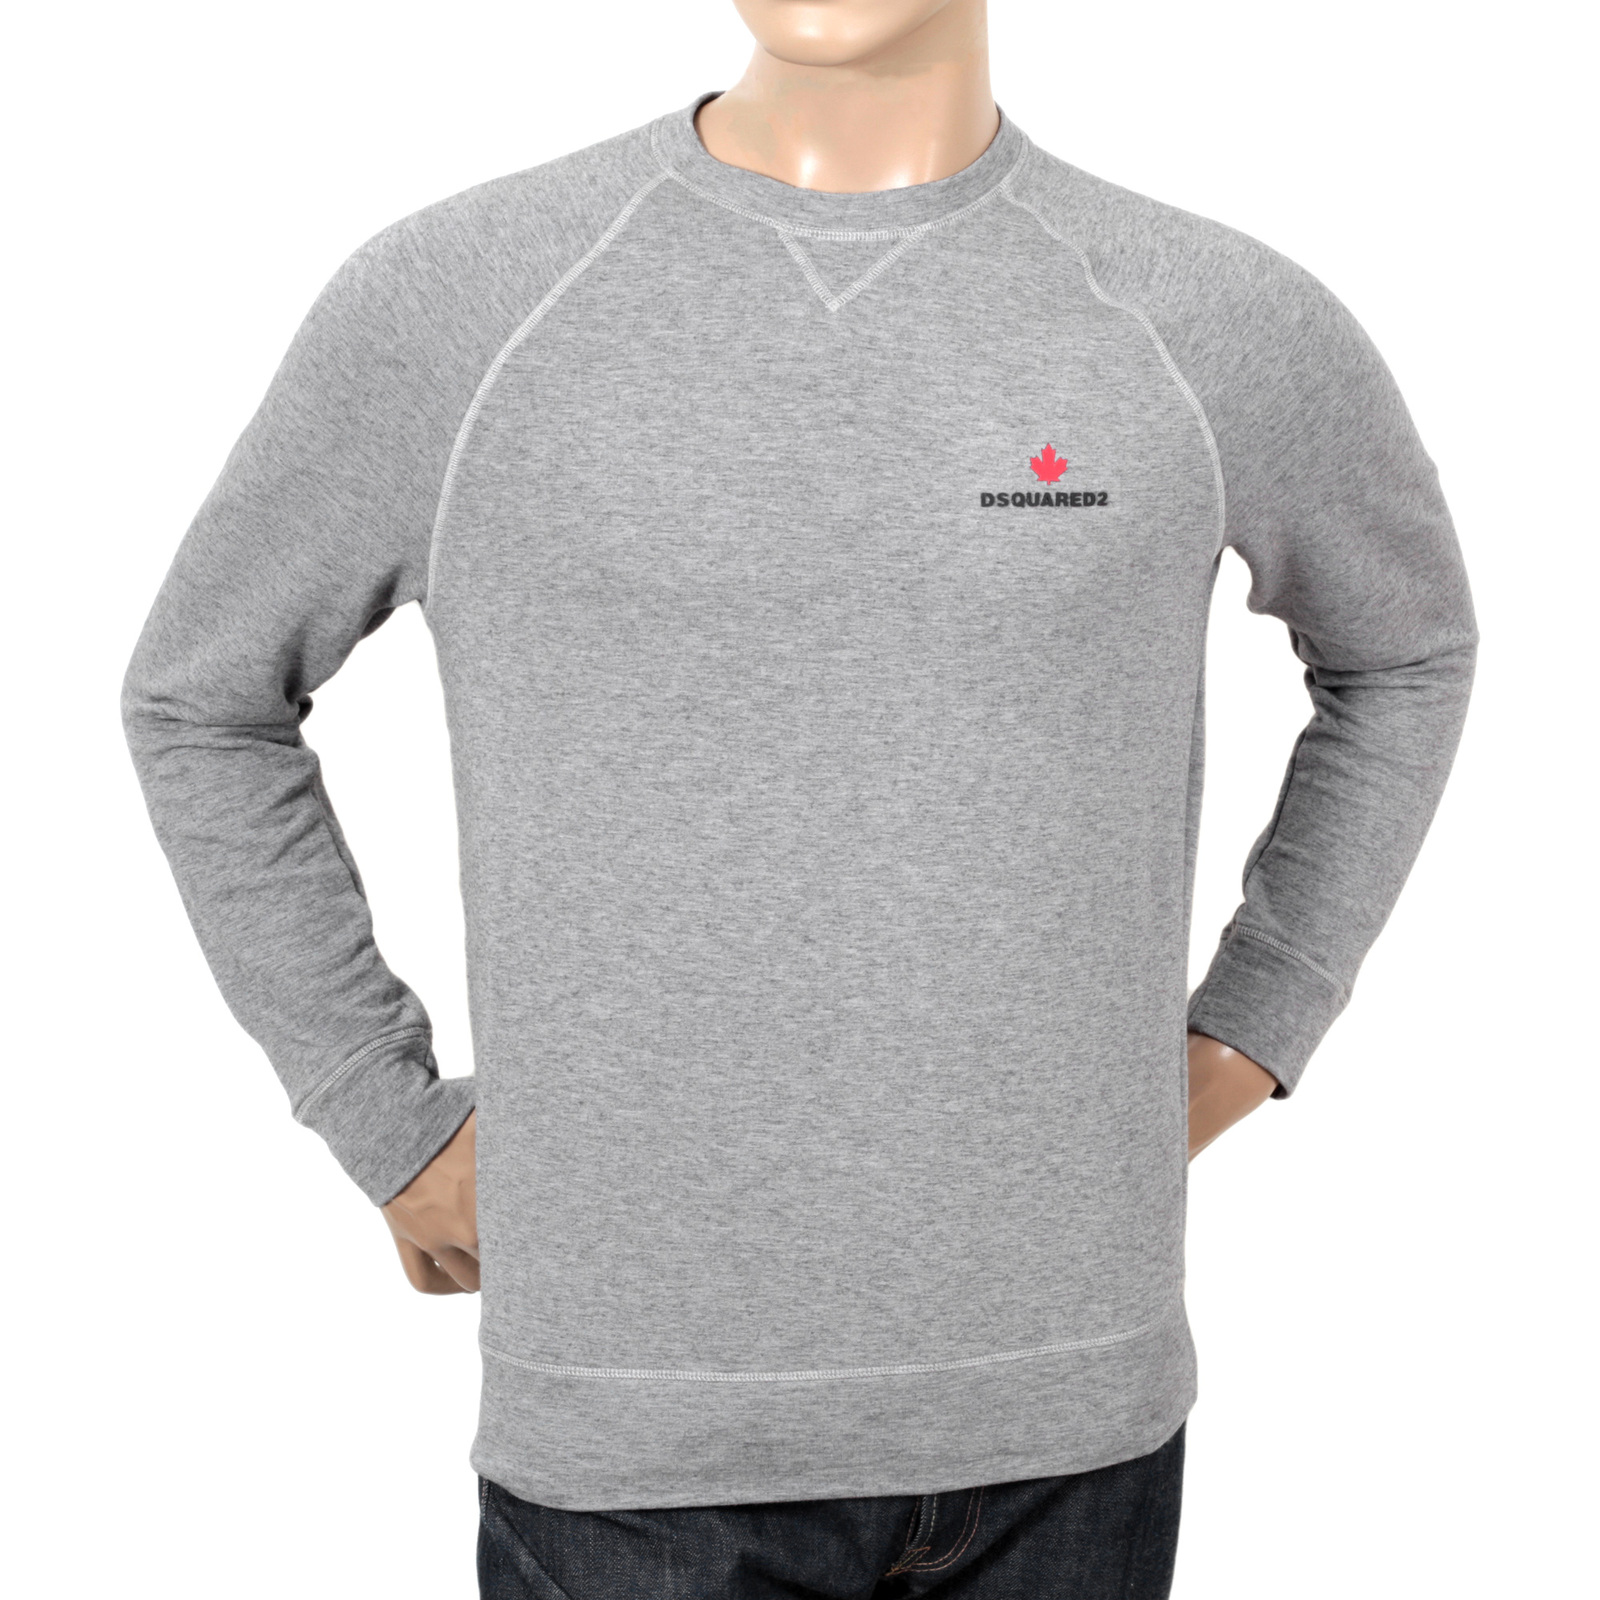 3c97114b3e71 DSquared Grey Raglan Sleeve Crew Neck Sweatshirt for Men with Maple Leaf  and Text Logo Branding